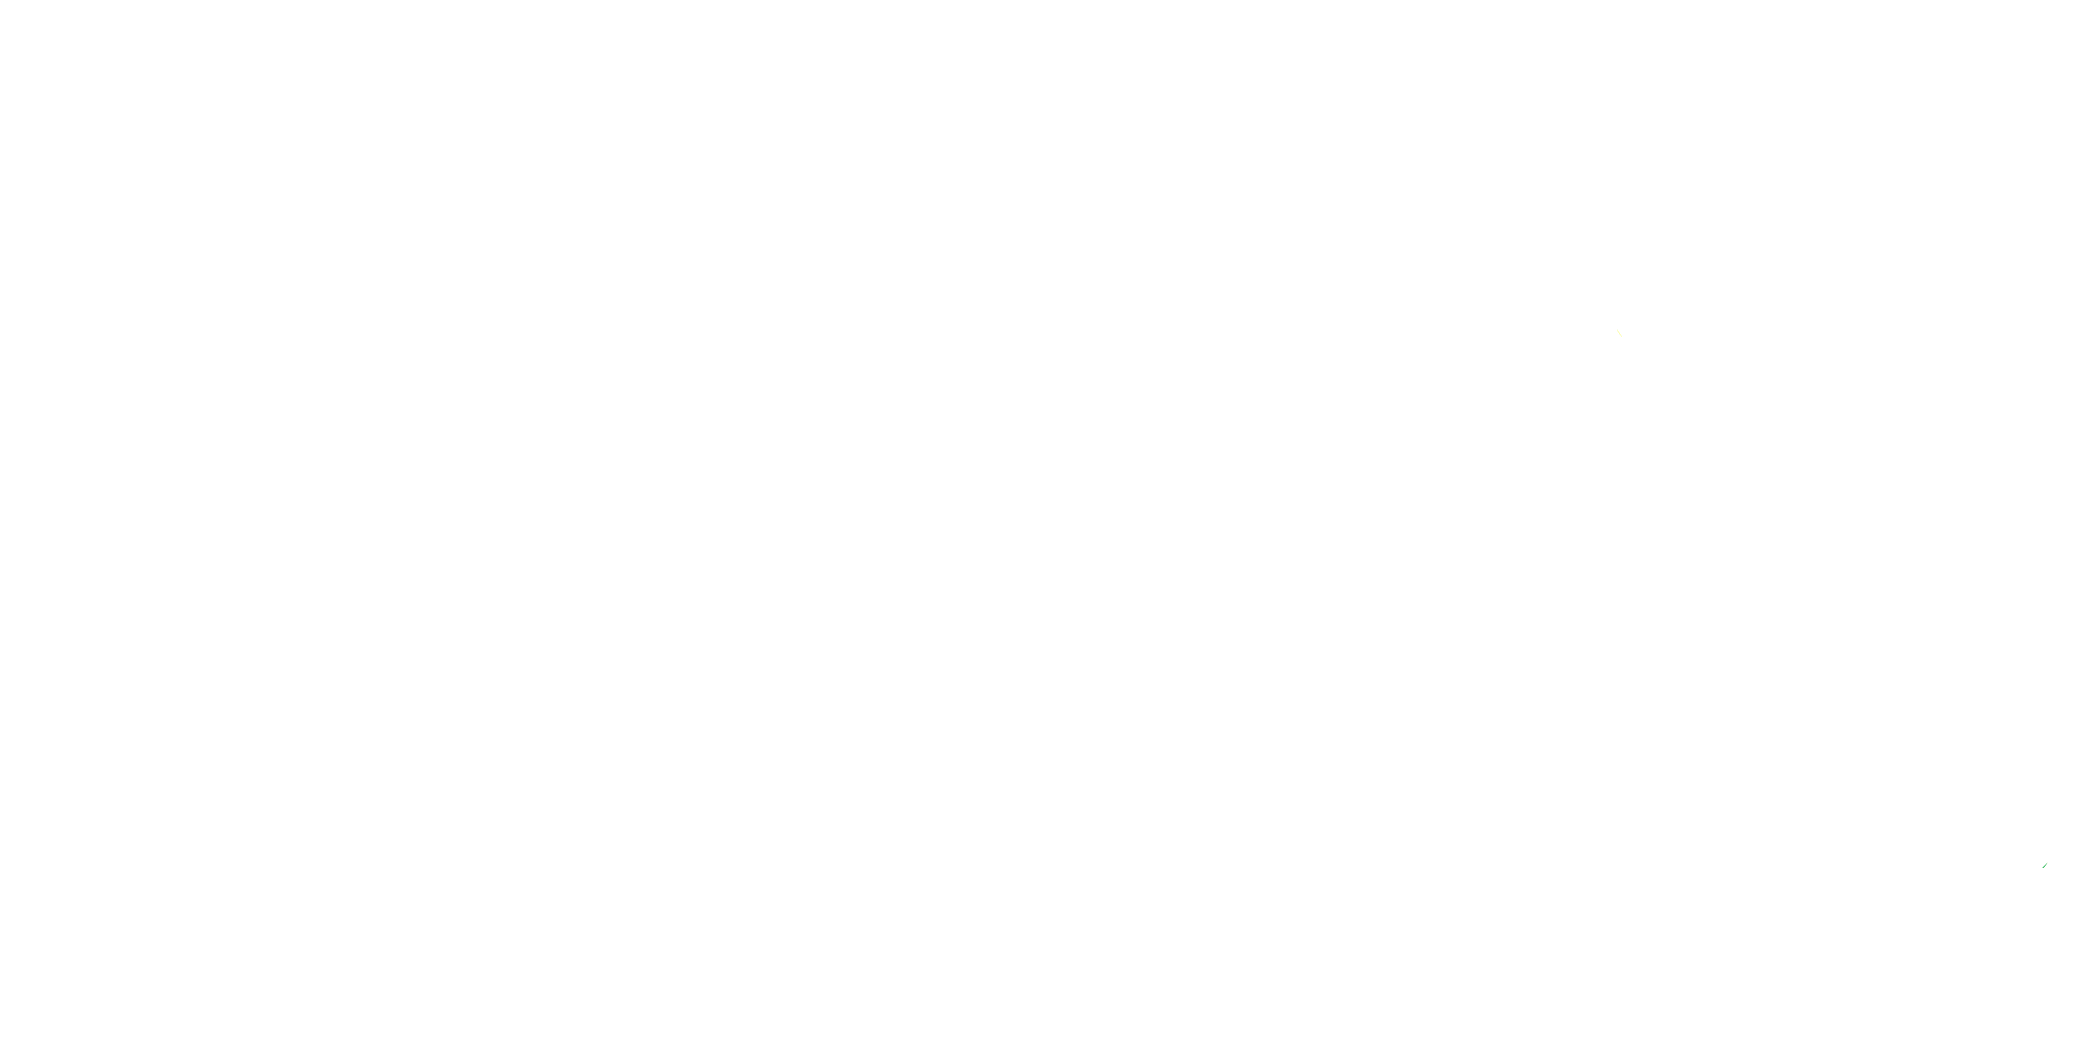 Useful Essential Oils